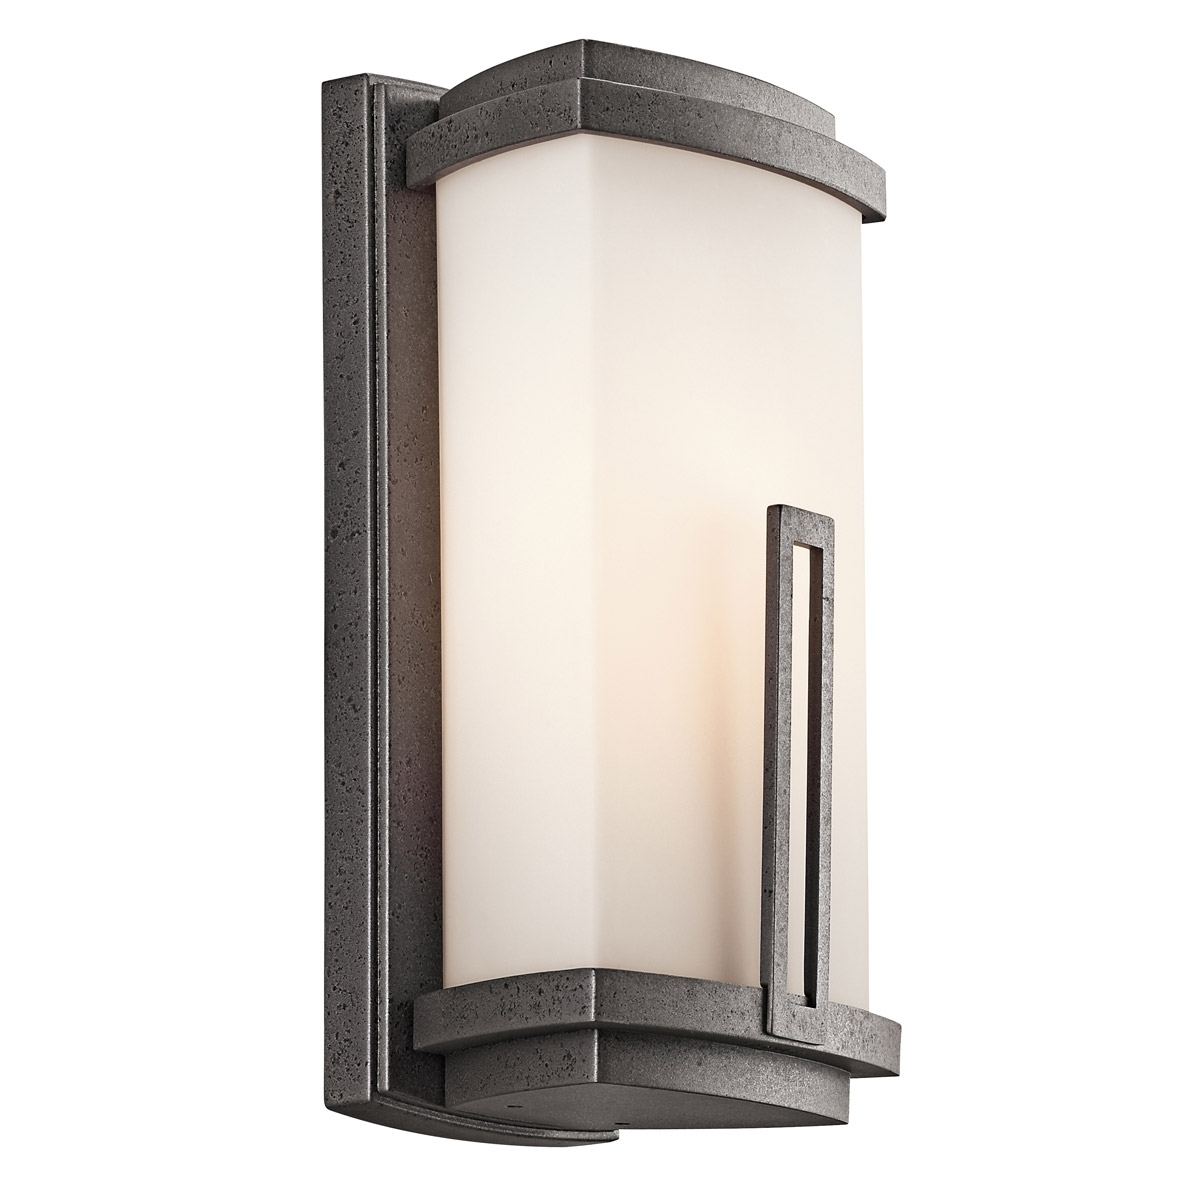 Kichler Outdoor Lighting Wall Sconce • Wall Sconces Pertaining To Kichler Outdoor Lighting Wall Sconces (View 12 of 15)